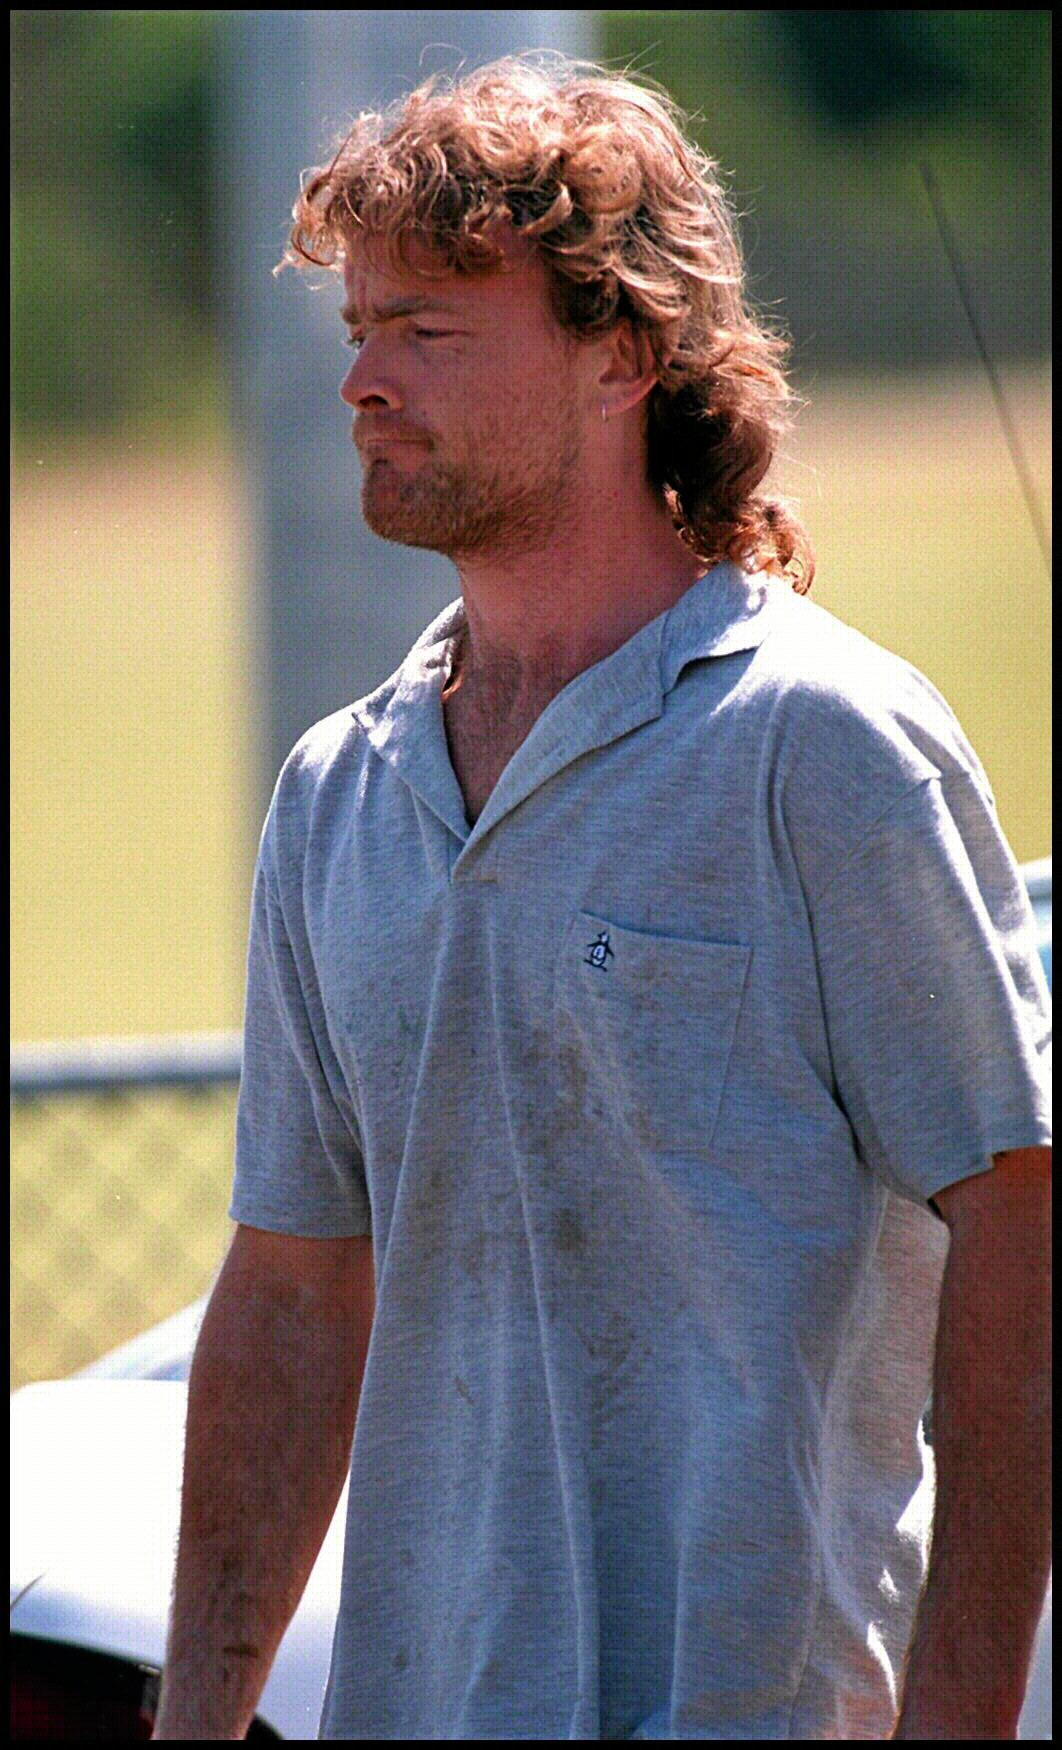 Labourer Paul Stephen Osborne (27) outside Kawana Waters Police Station, 29 oct 1995, accused of murdering Leanne Oliver (10) & her friend Patricia Leedie (9) at Warana Beach  Kawana Waters, Sunshine Coast. Pic Patrick/Hamilton. F/L  Qld / Crime / Murder headshot alone